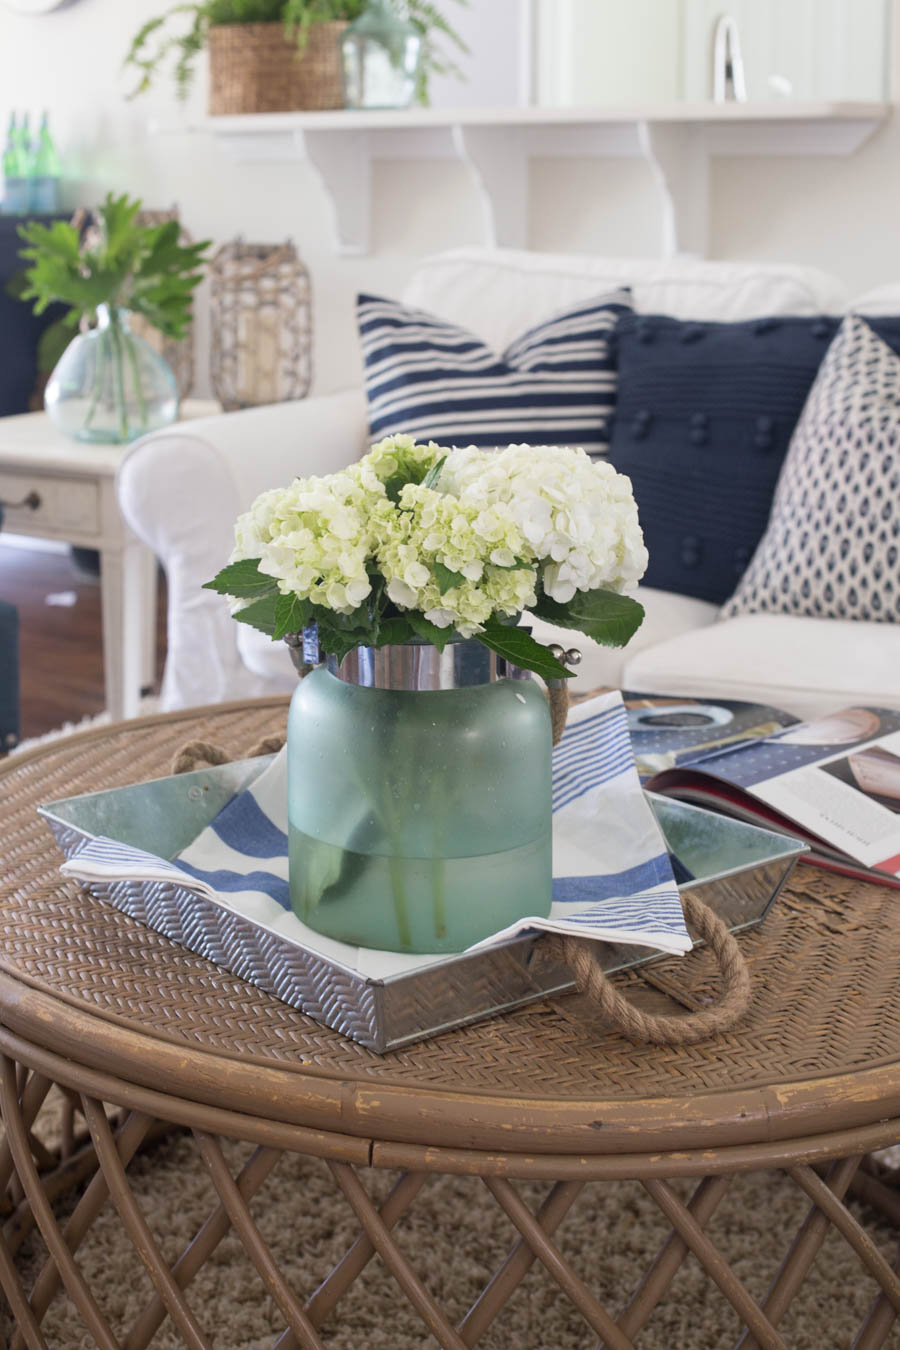 Summer Decor Ideas 30 summer decorating ideas - easy ways to decorate your home for